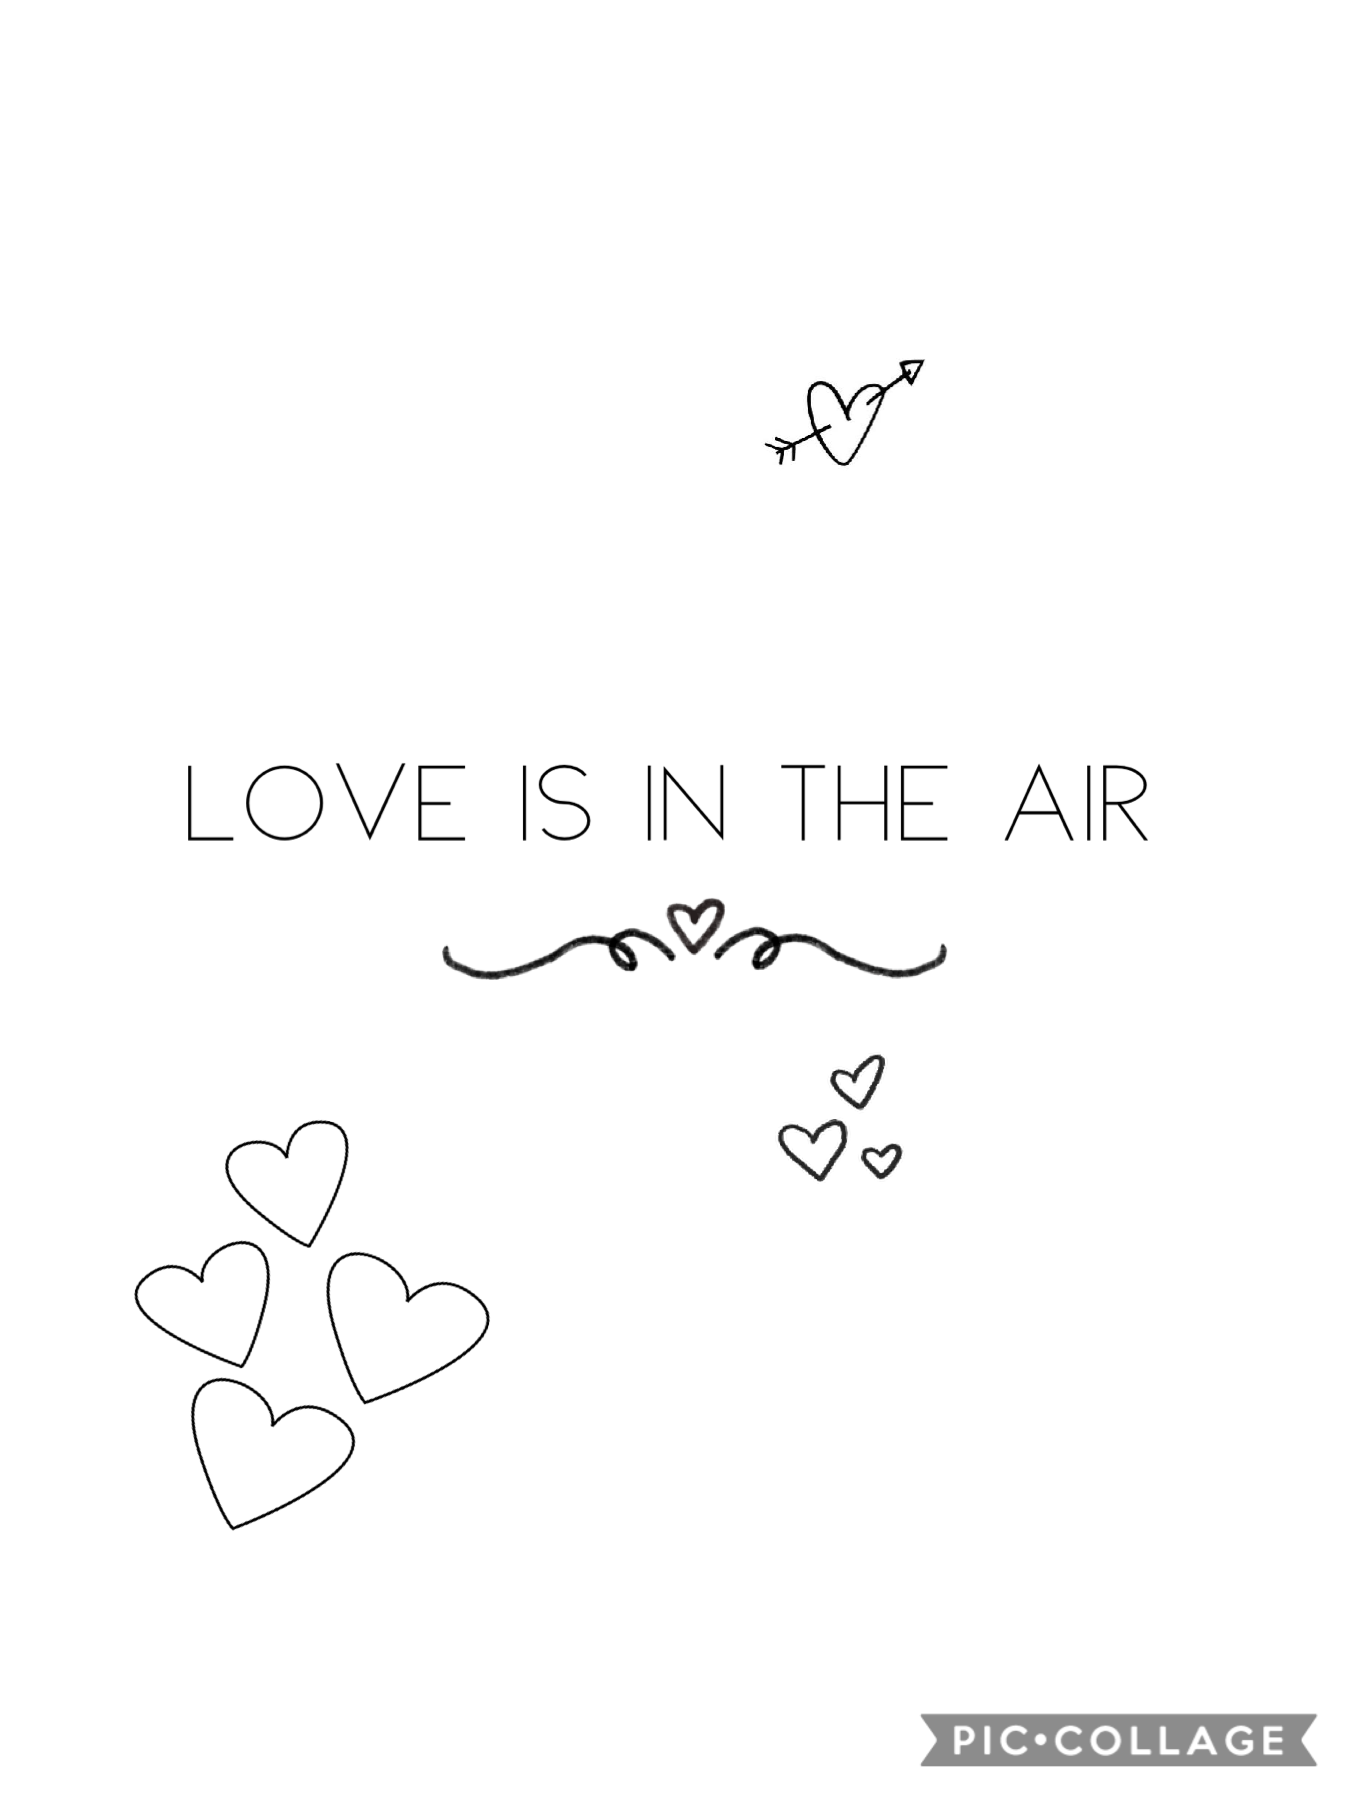 Love is in the air ❤️